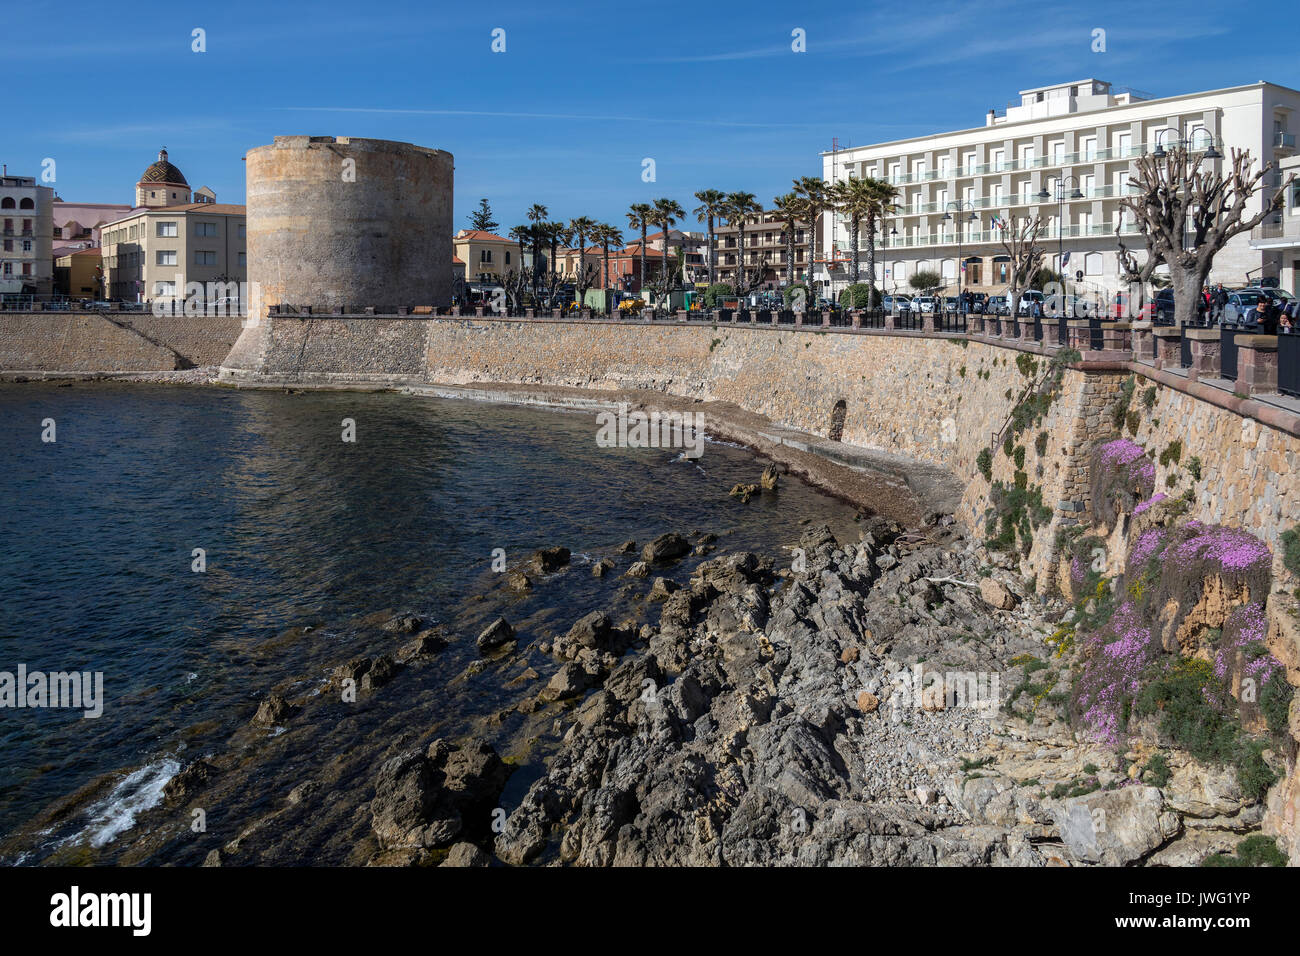 Porta a Terra Tower in the town of Alghero in the province of Sassari on the northwest coast of the island of Sardinia, Italy. - Stock Image